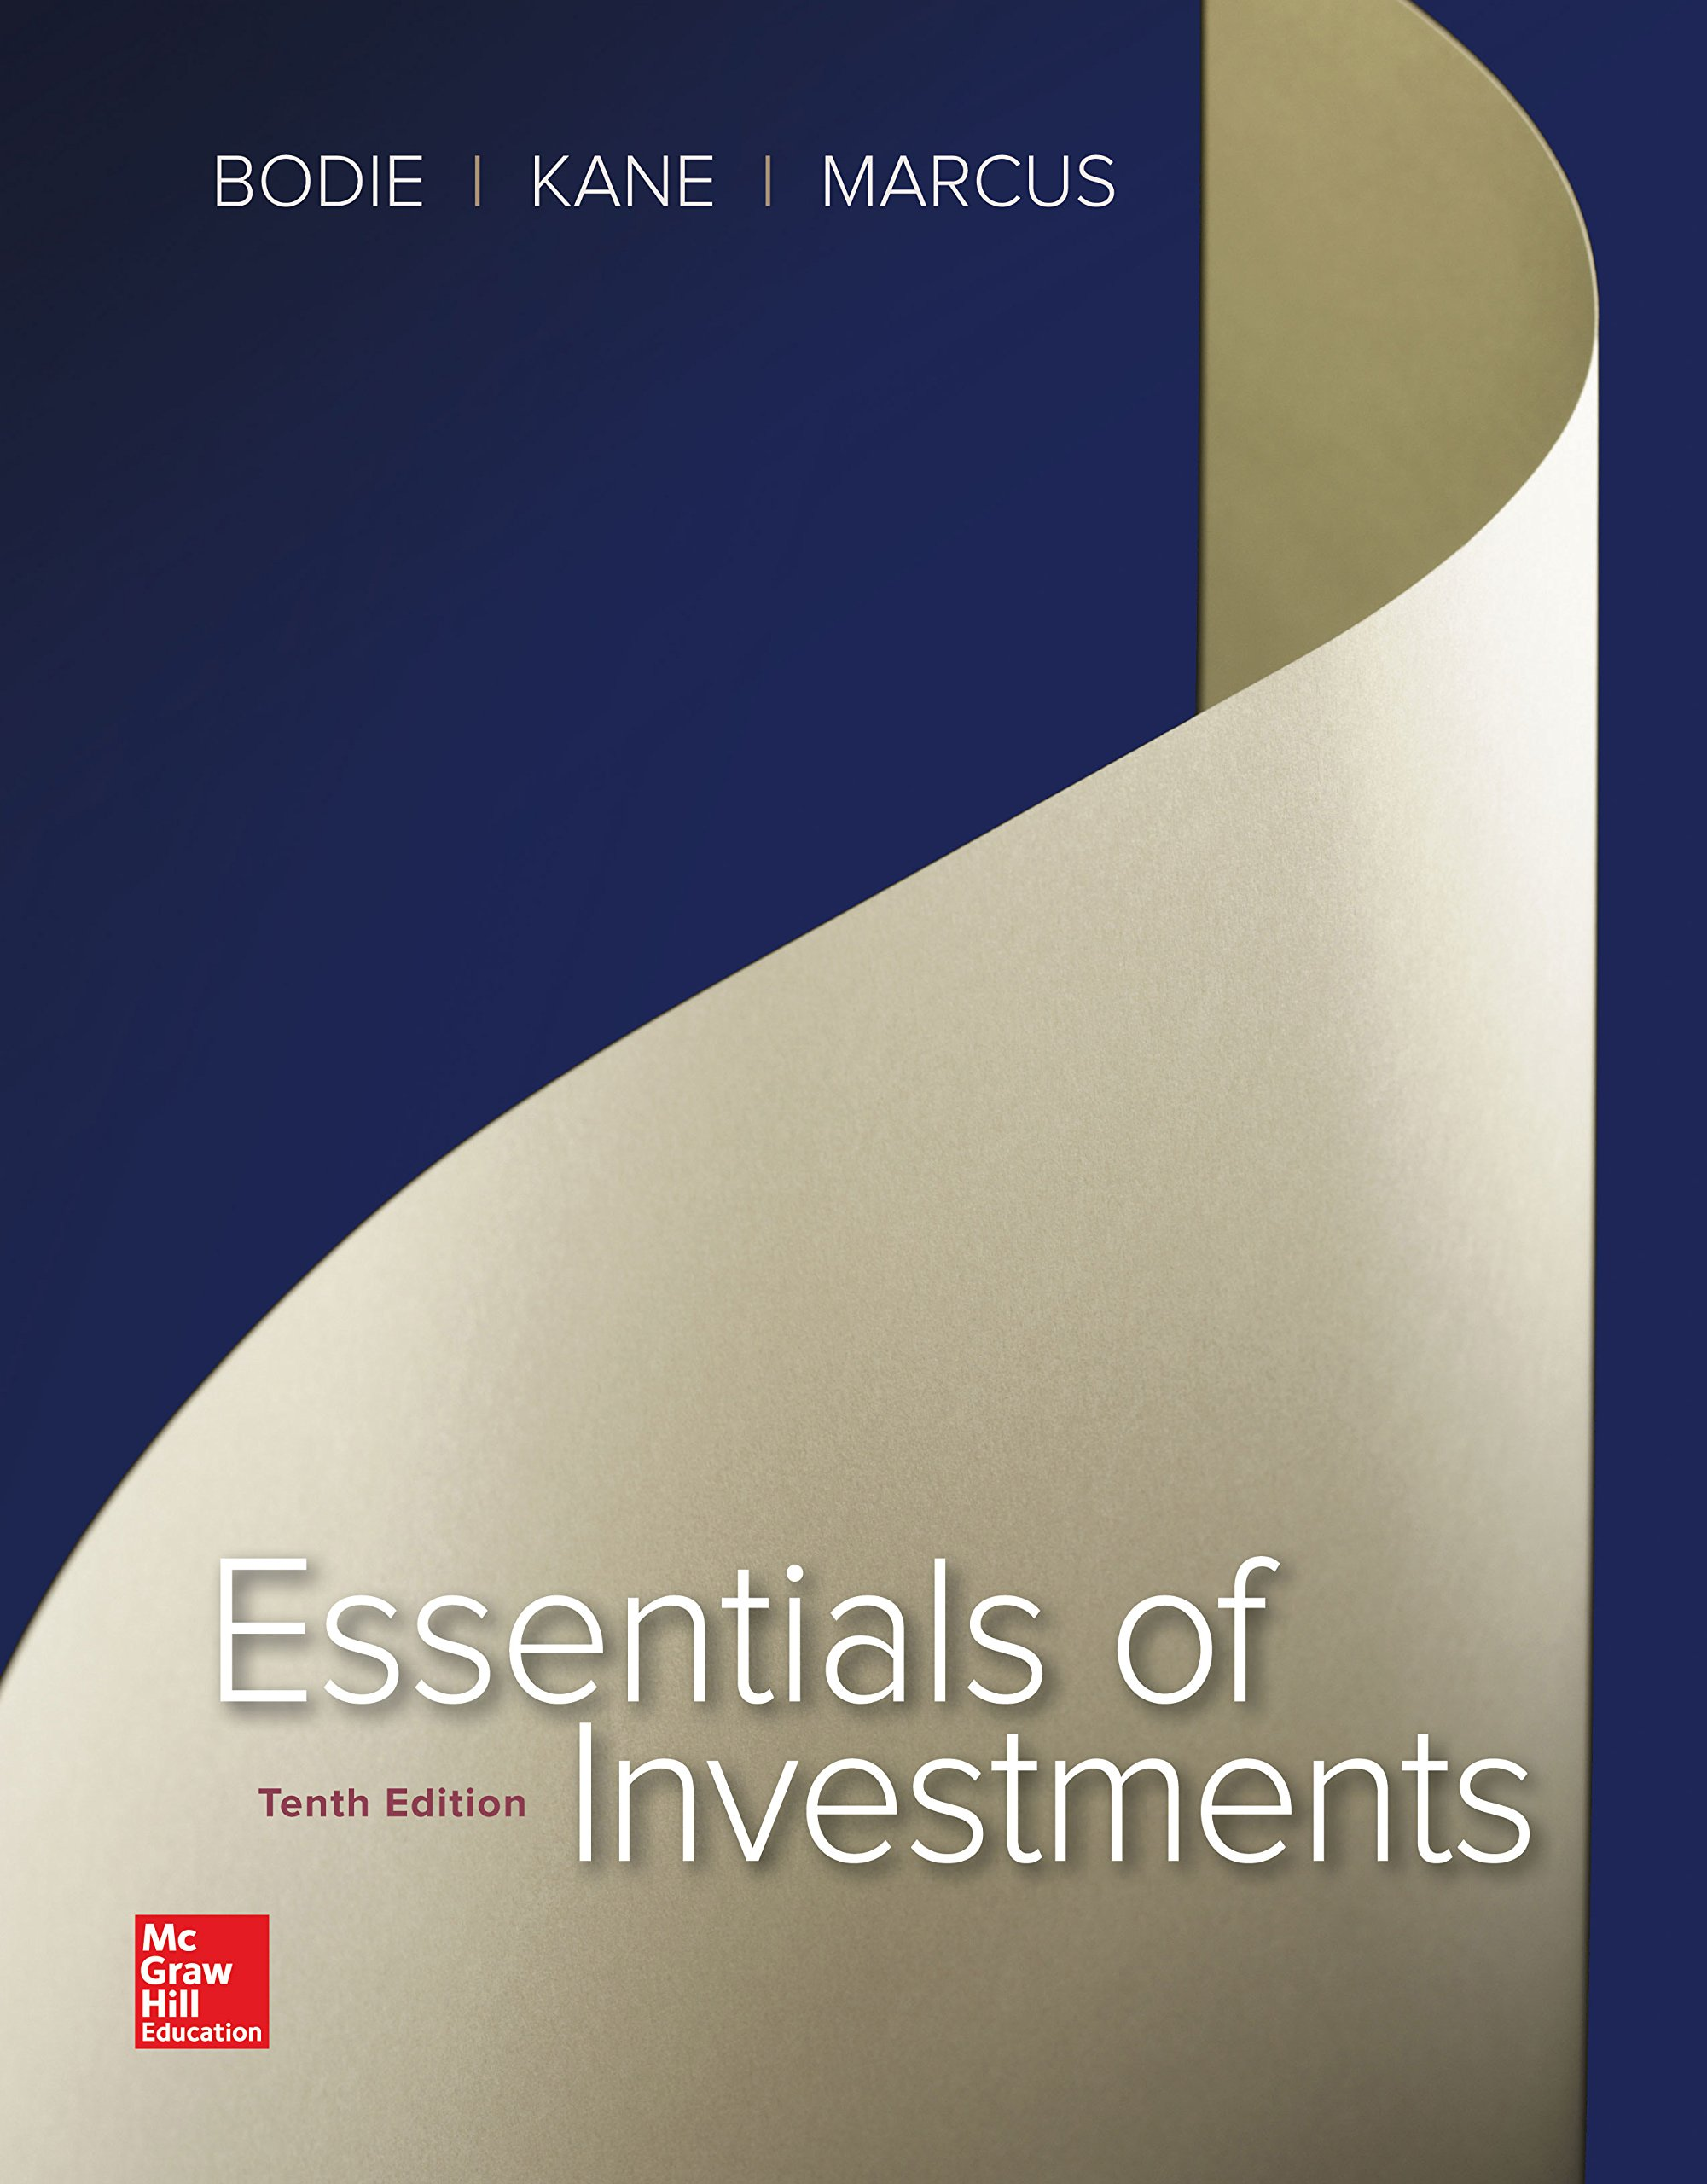 Investments Bodie Kane Marcus 10th Edition Pdf Download